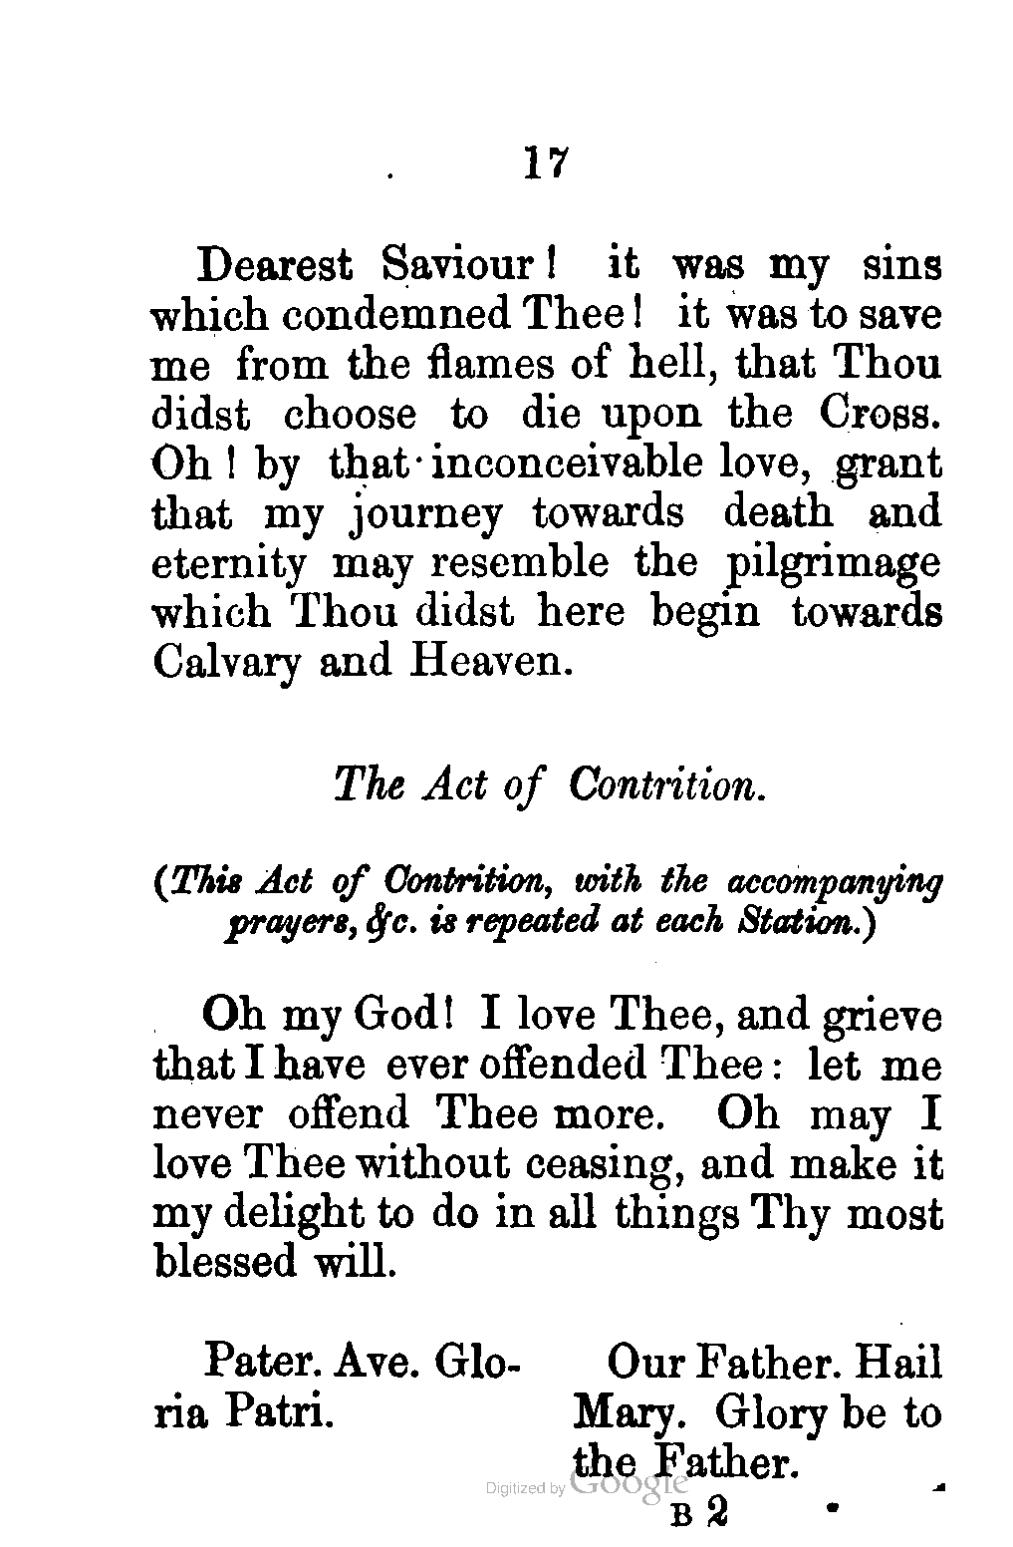 image about Act of Contrition Prayer Printable referred to as Webpage:The Direction of the Holy Cross Martin.djvu/22 - Wikisource